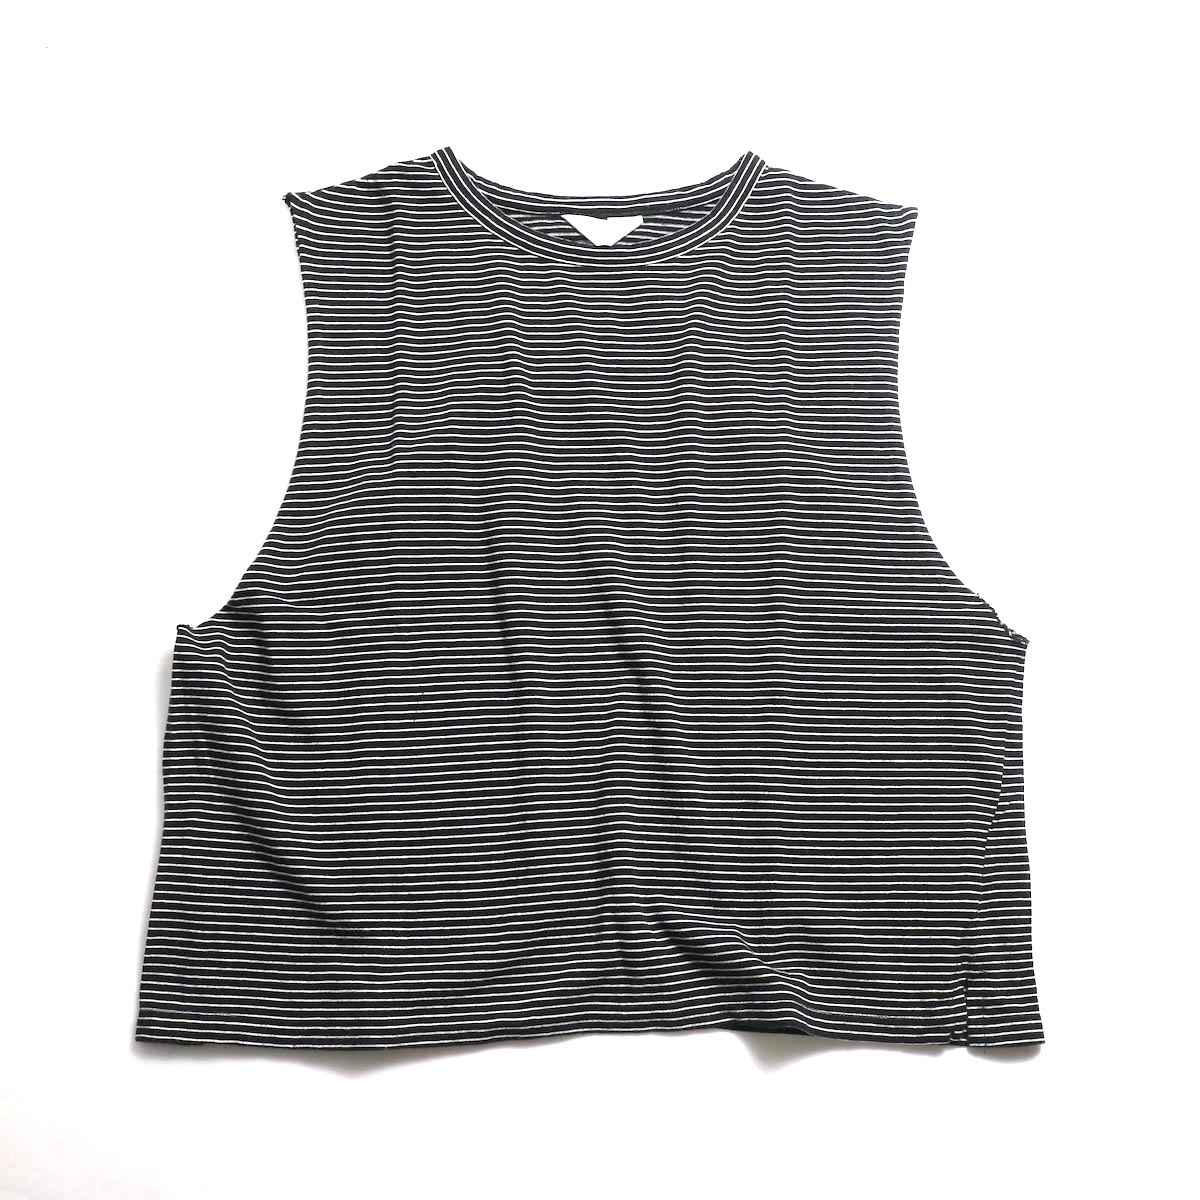 UNUSED / US1568 Border No Sleeve Tee (Black×White) 正面